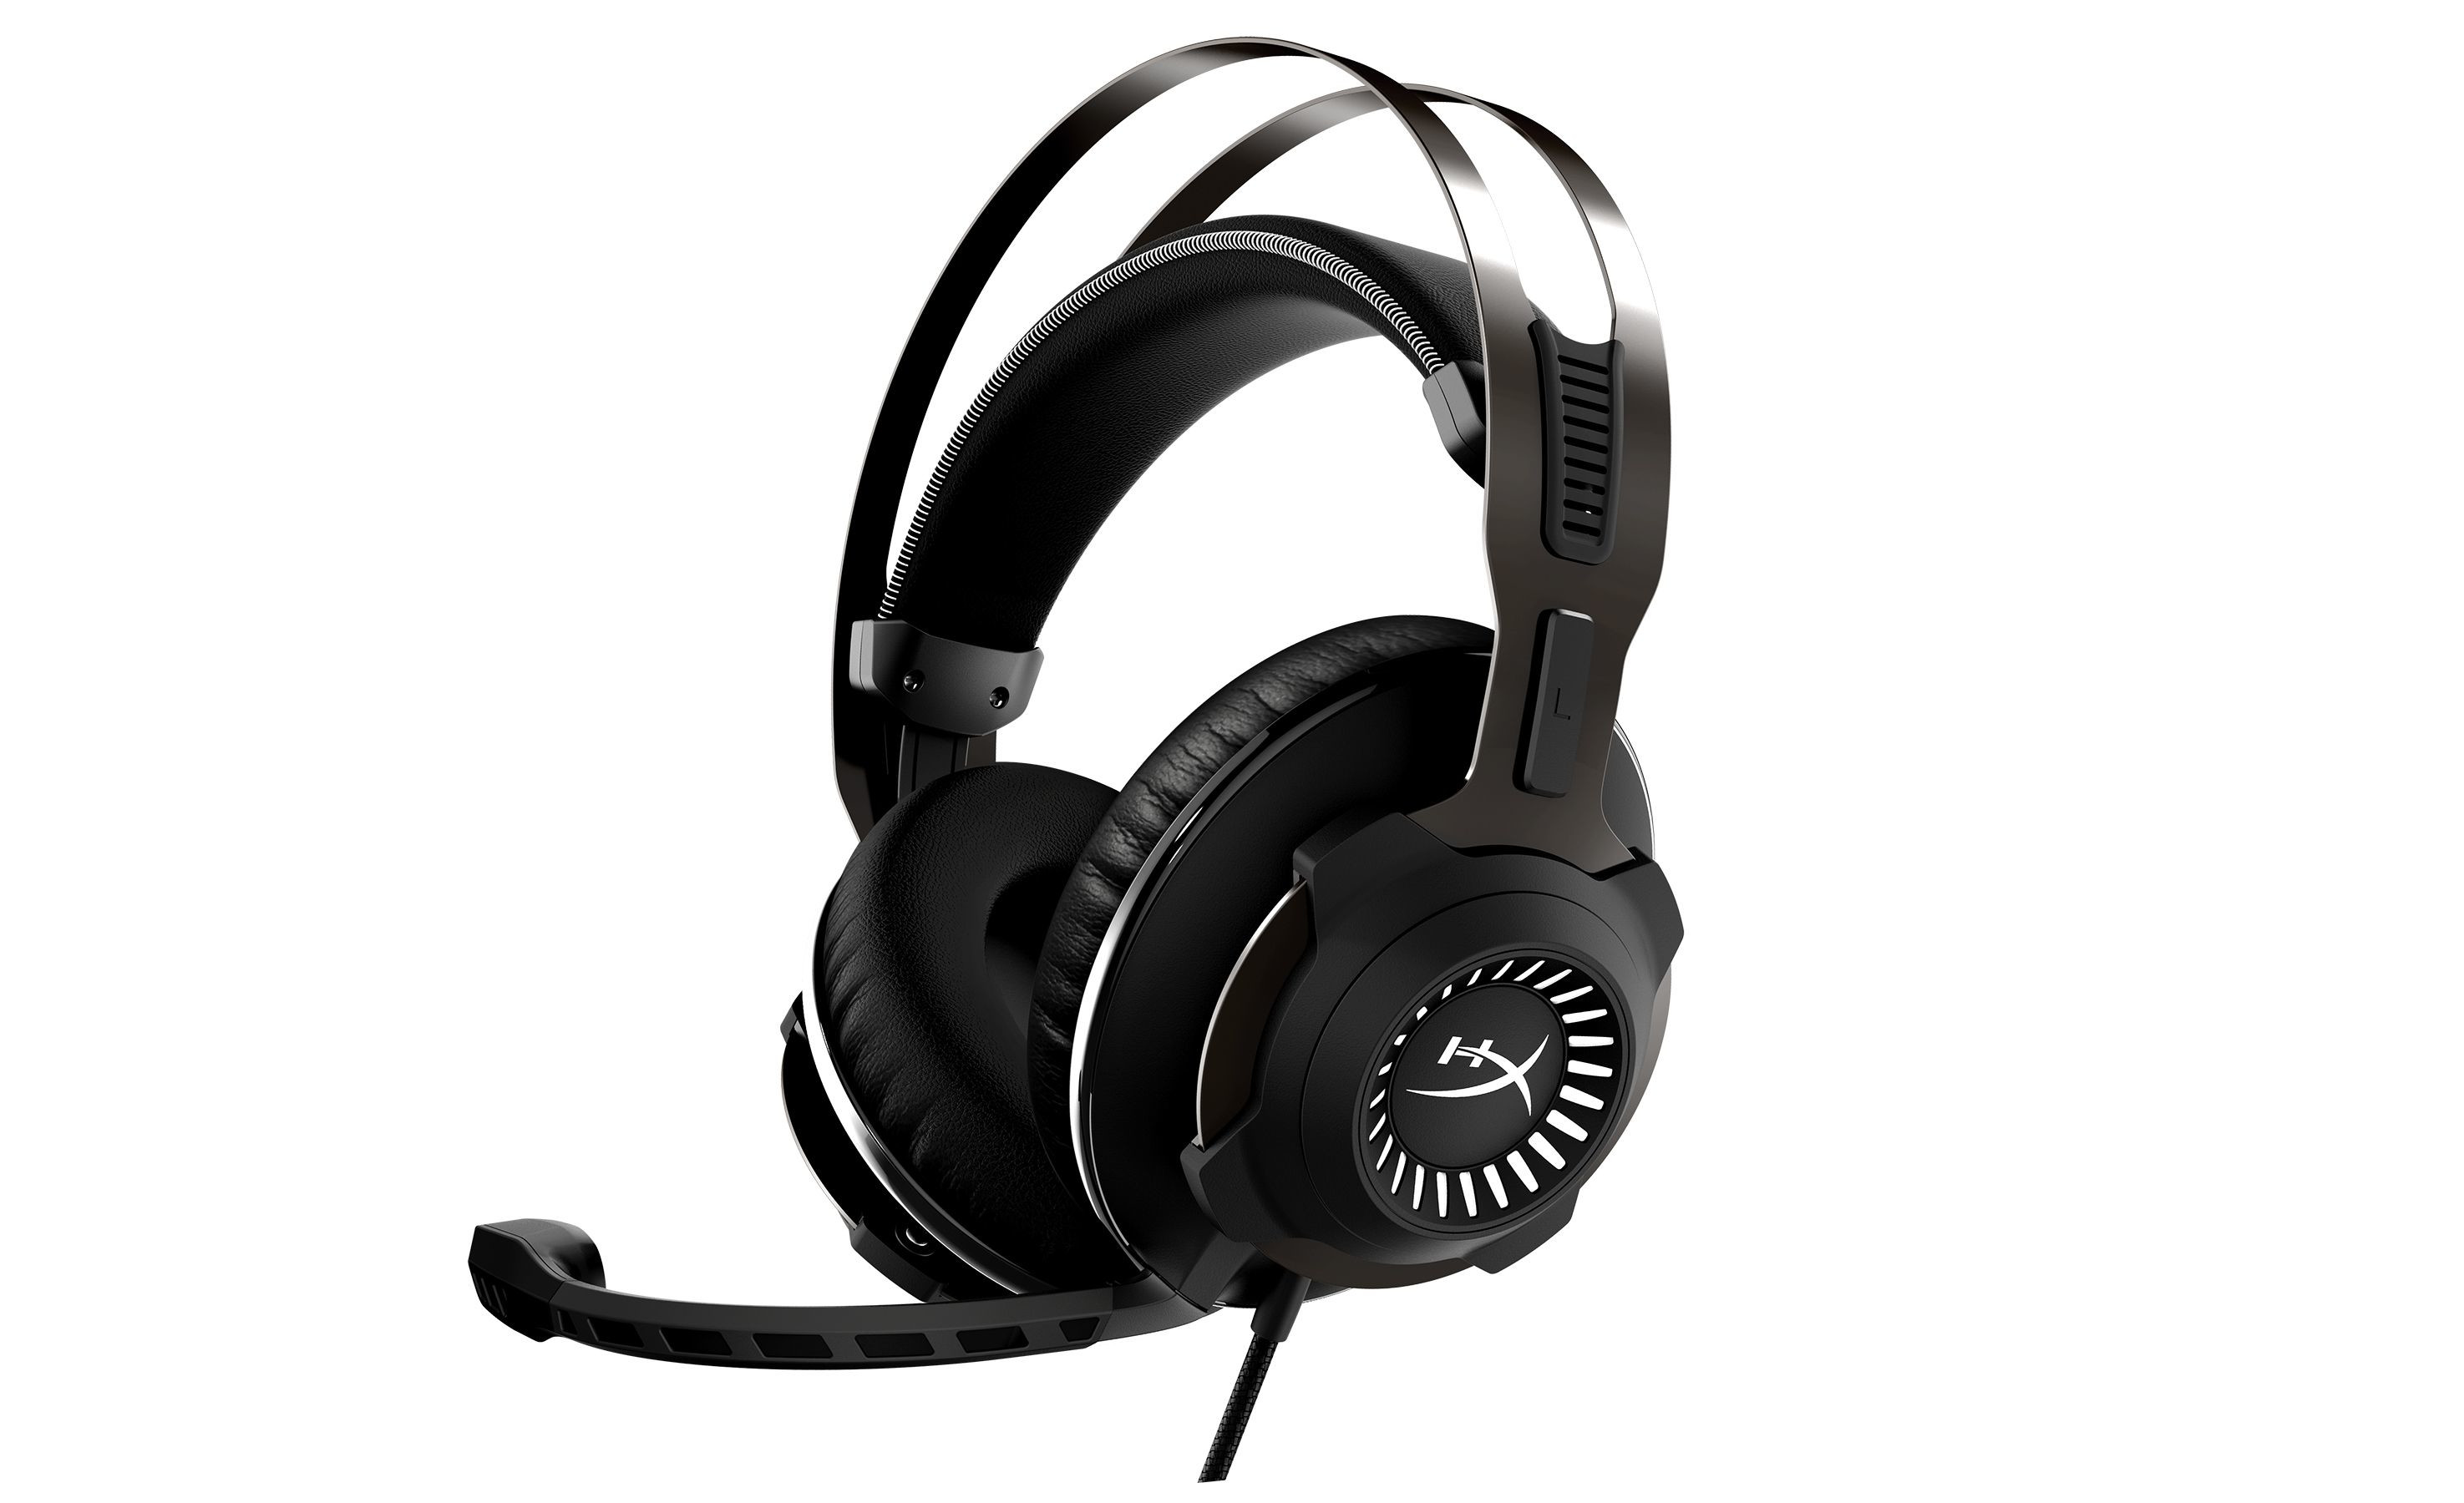 Kind of lining can you expect on the kingston hyperx cloud ii headset - Hyperx Announces The New Cloud Revolver S 7 1 Flagship Headphones